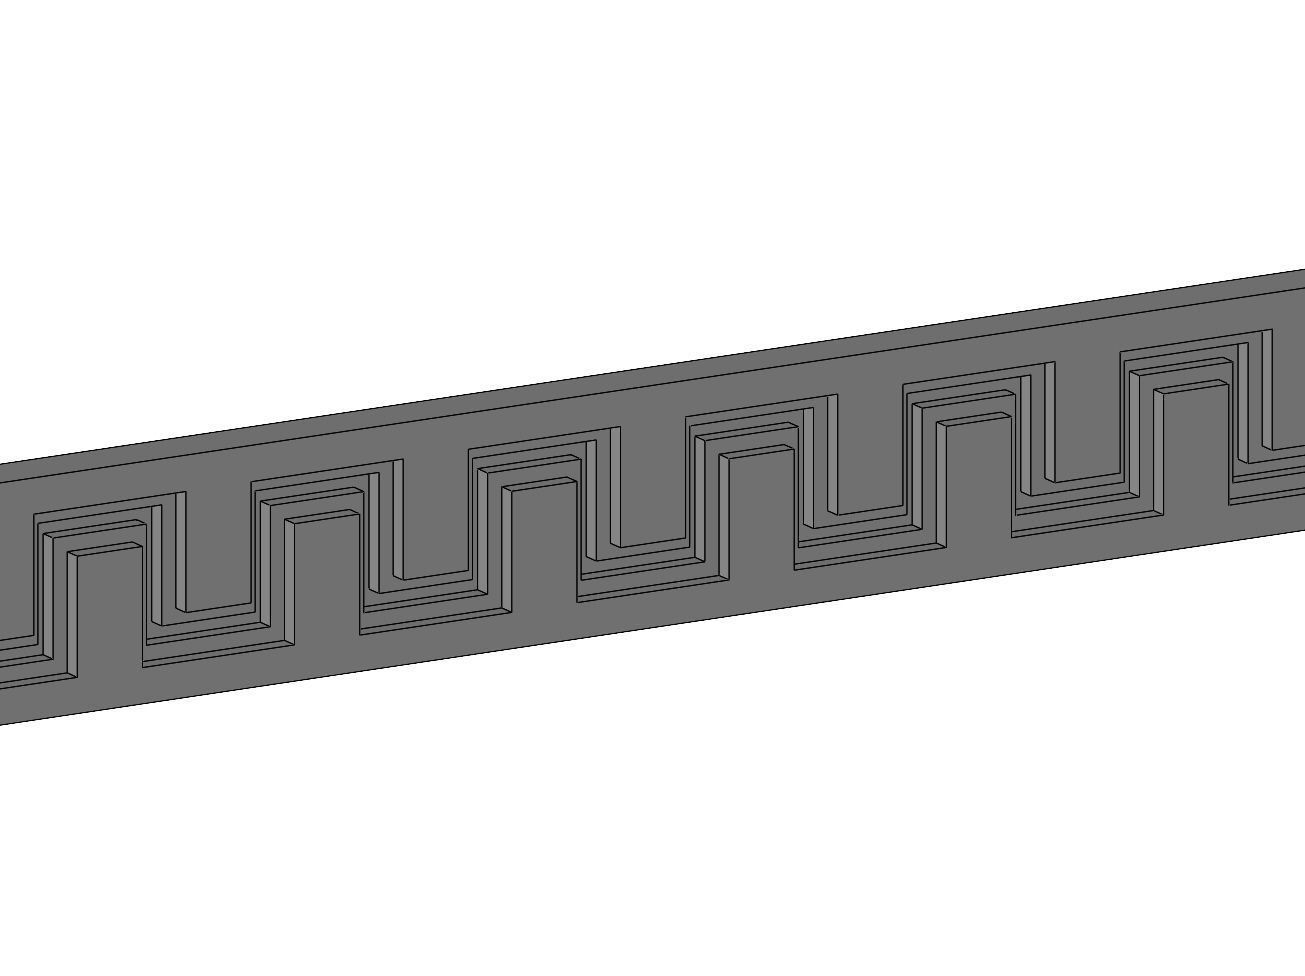 Greek key frieze panels for plaster and wood working